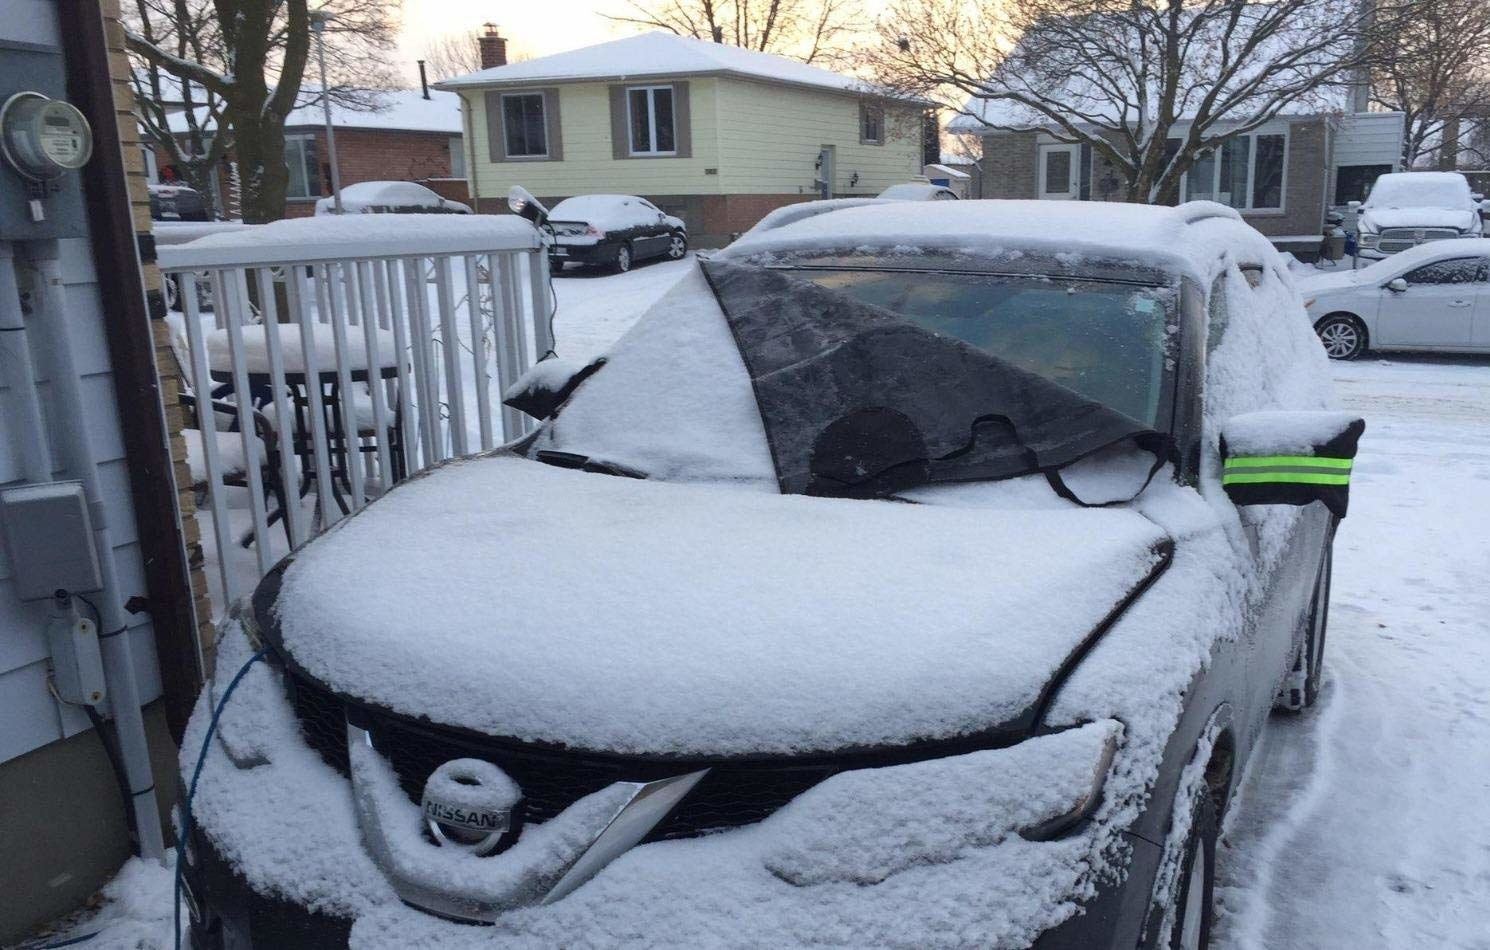 A car covered in snow with a thick tarp covering the windshield